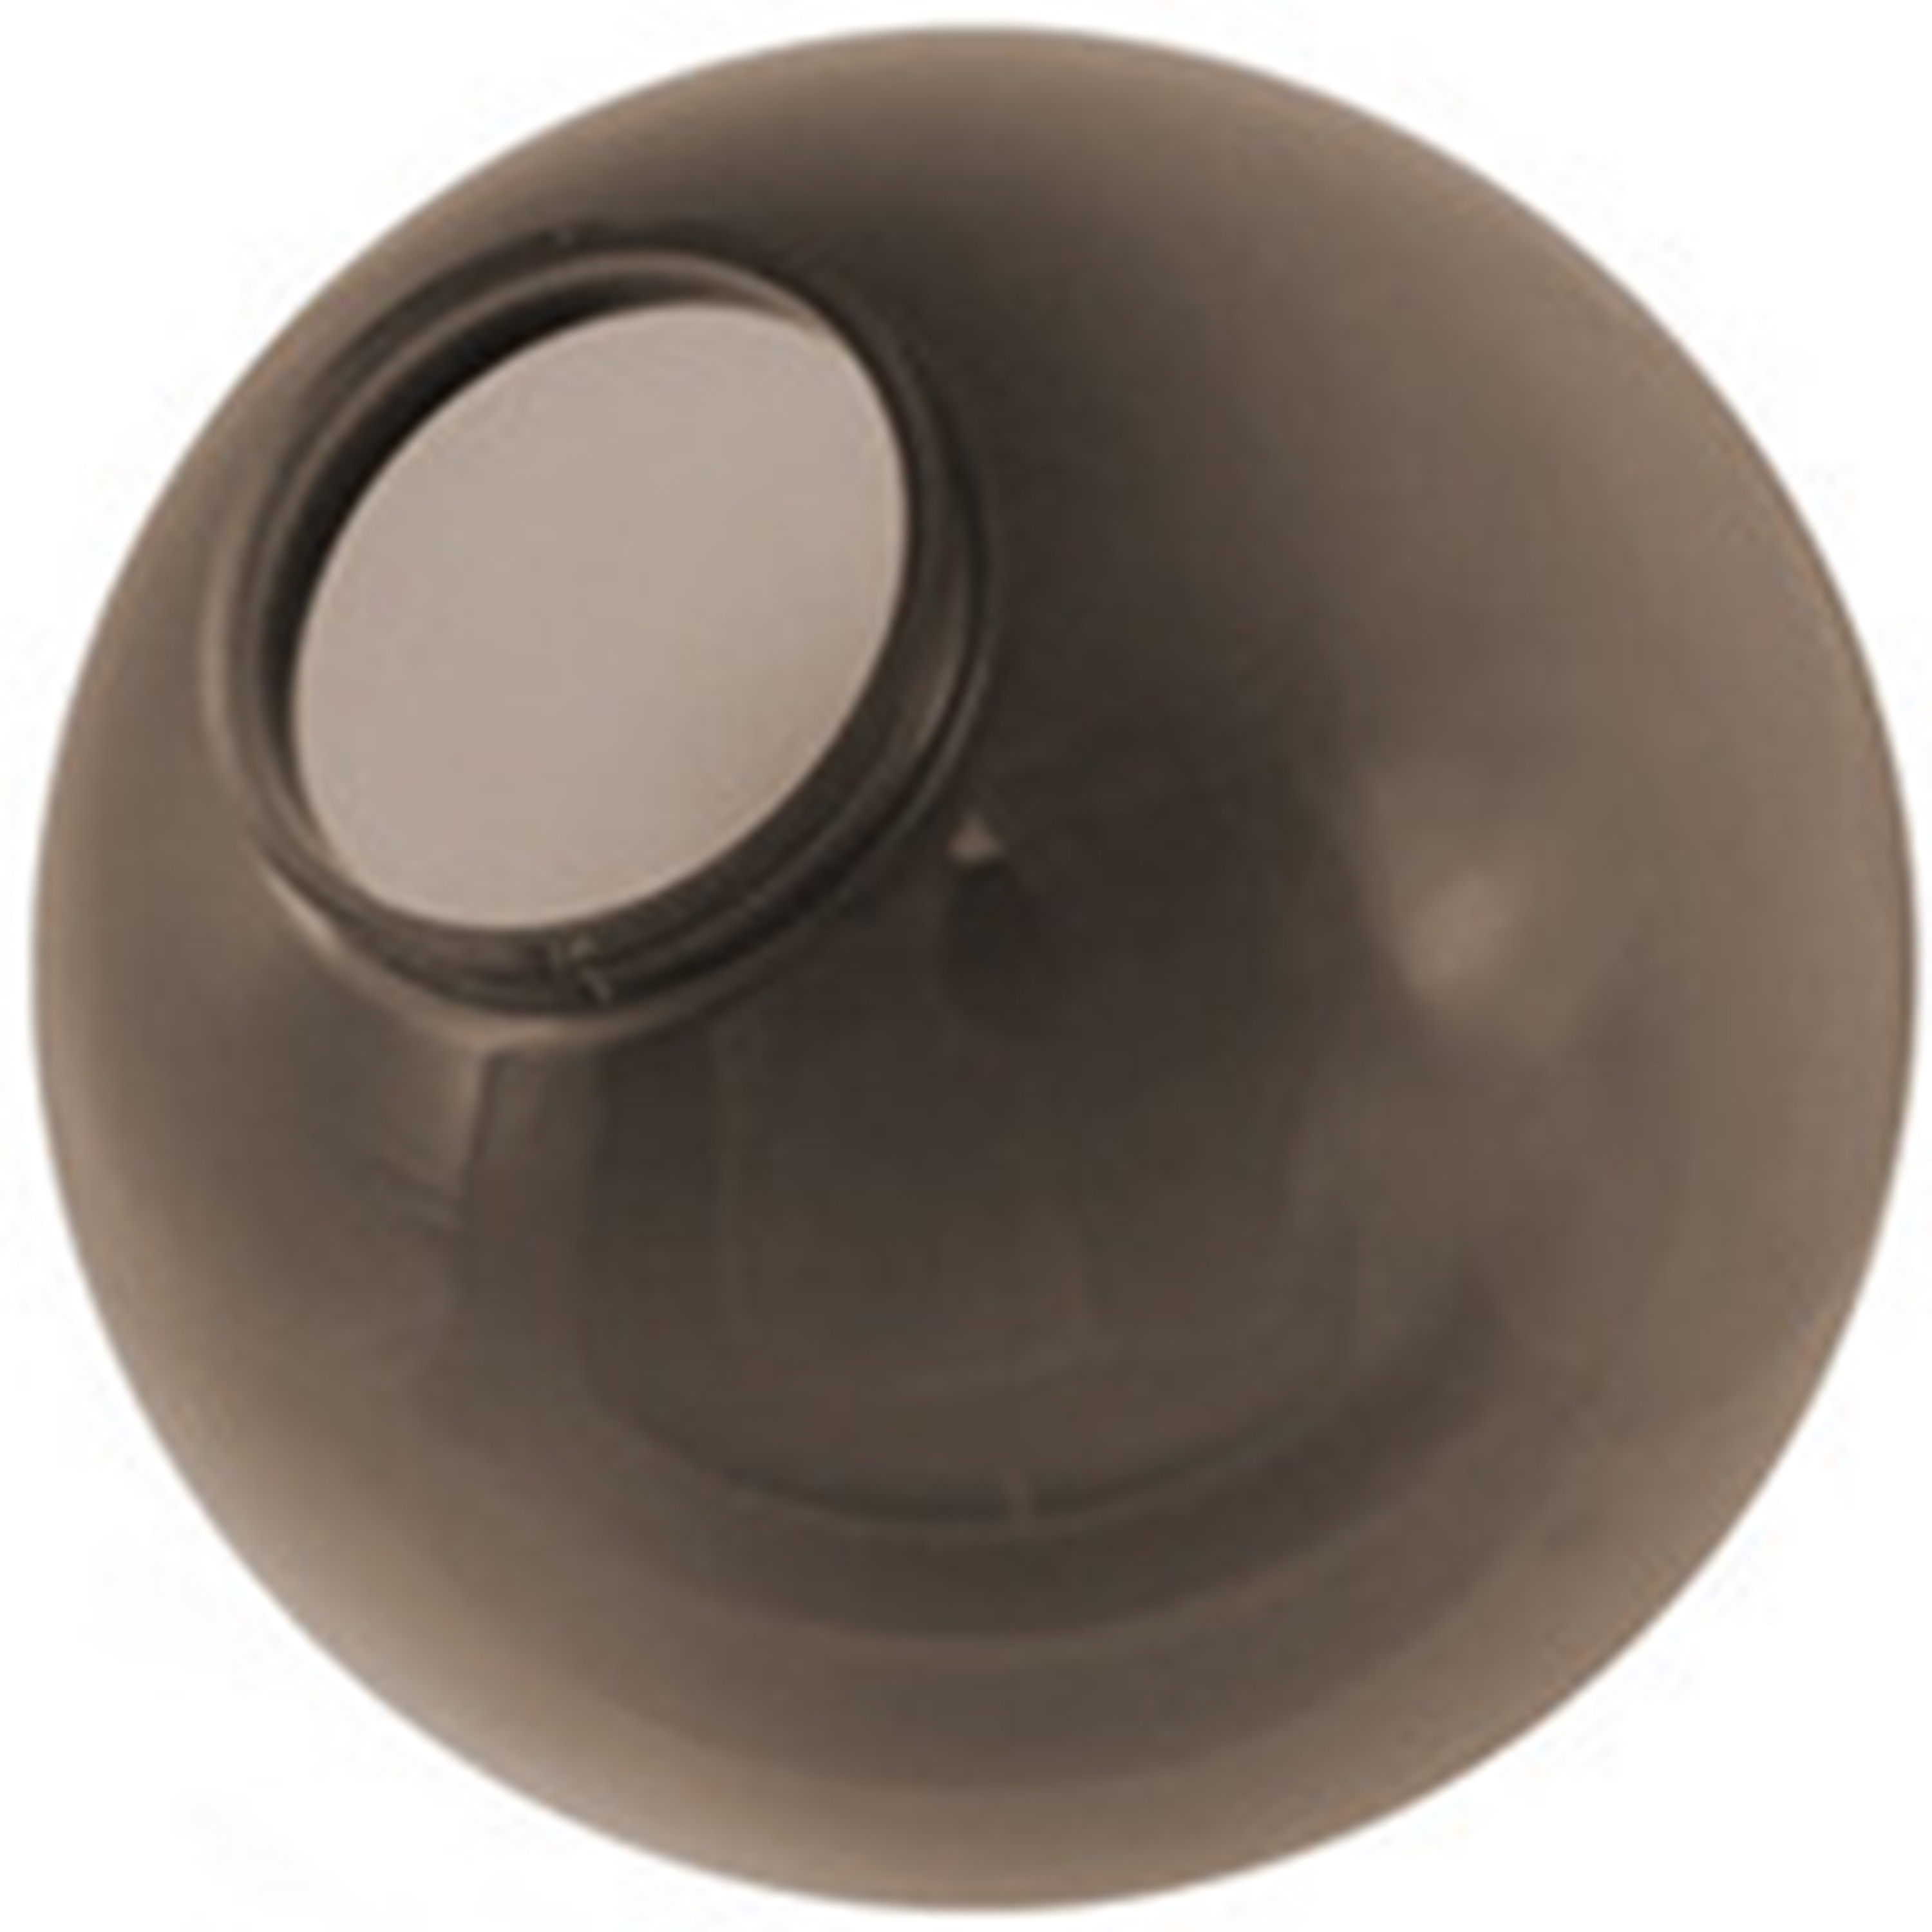 12 Inch Bronze Acrylic Lamp Post Globe With A 5 7 Inch